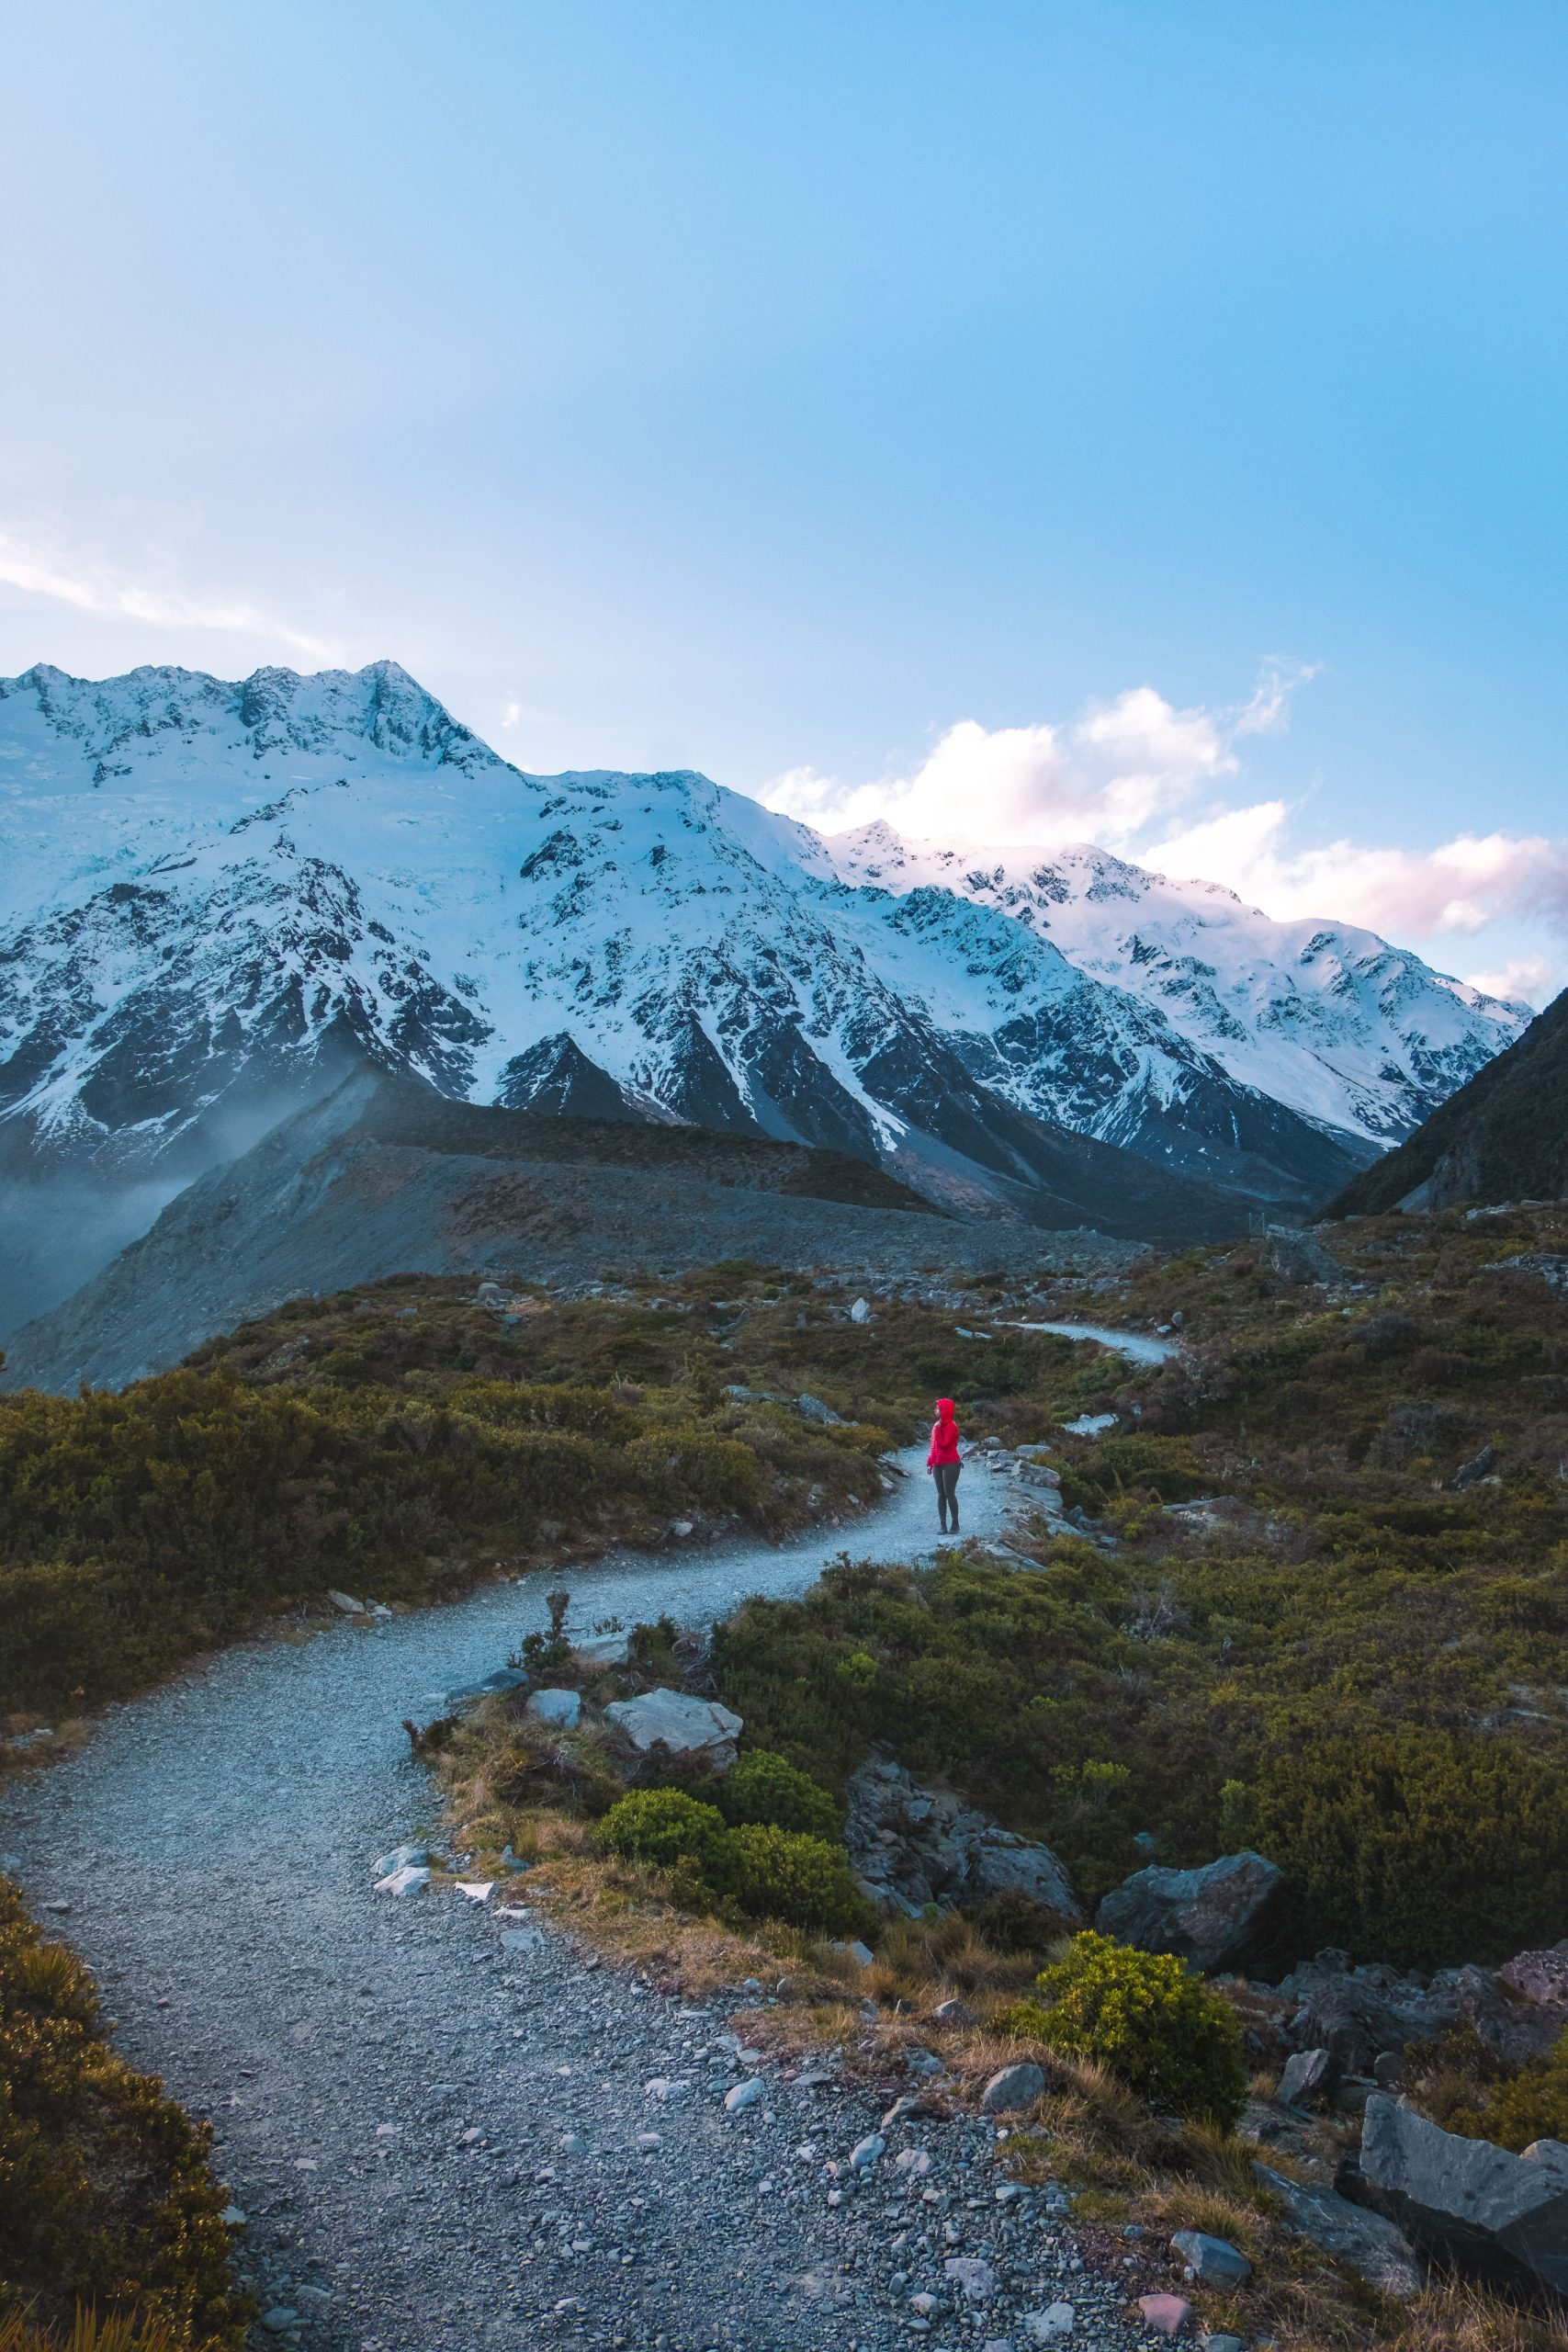 Hooker Valley Track is a great alternative to New Zealand Great Walks if you're short on time